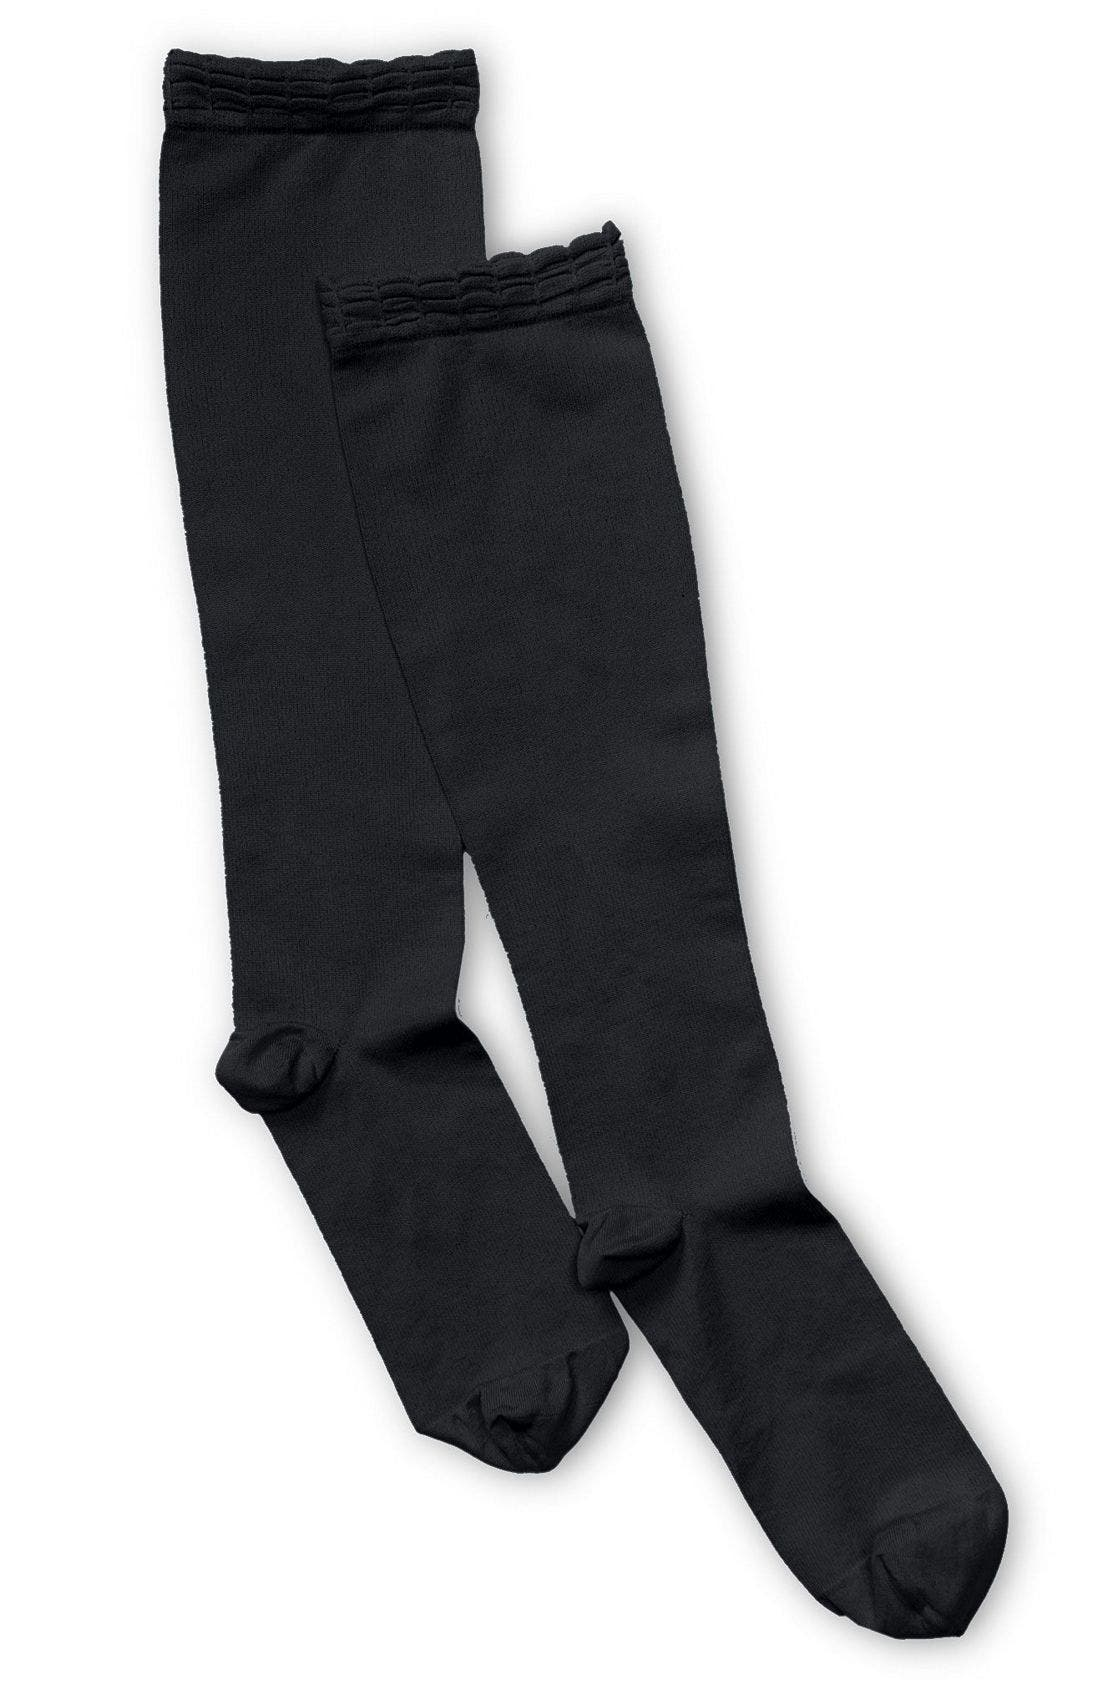 Alternate Image 1 Selected - Nordstrom Compression Trouser Socks